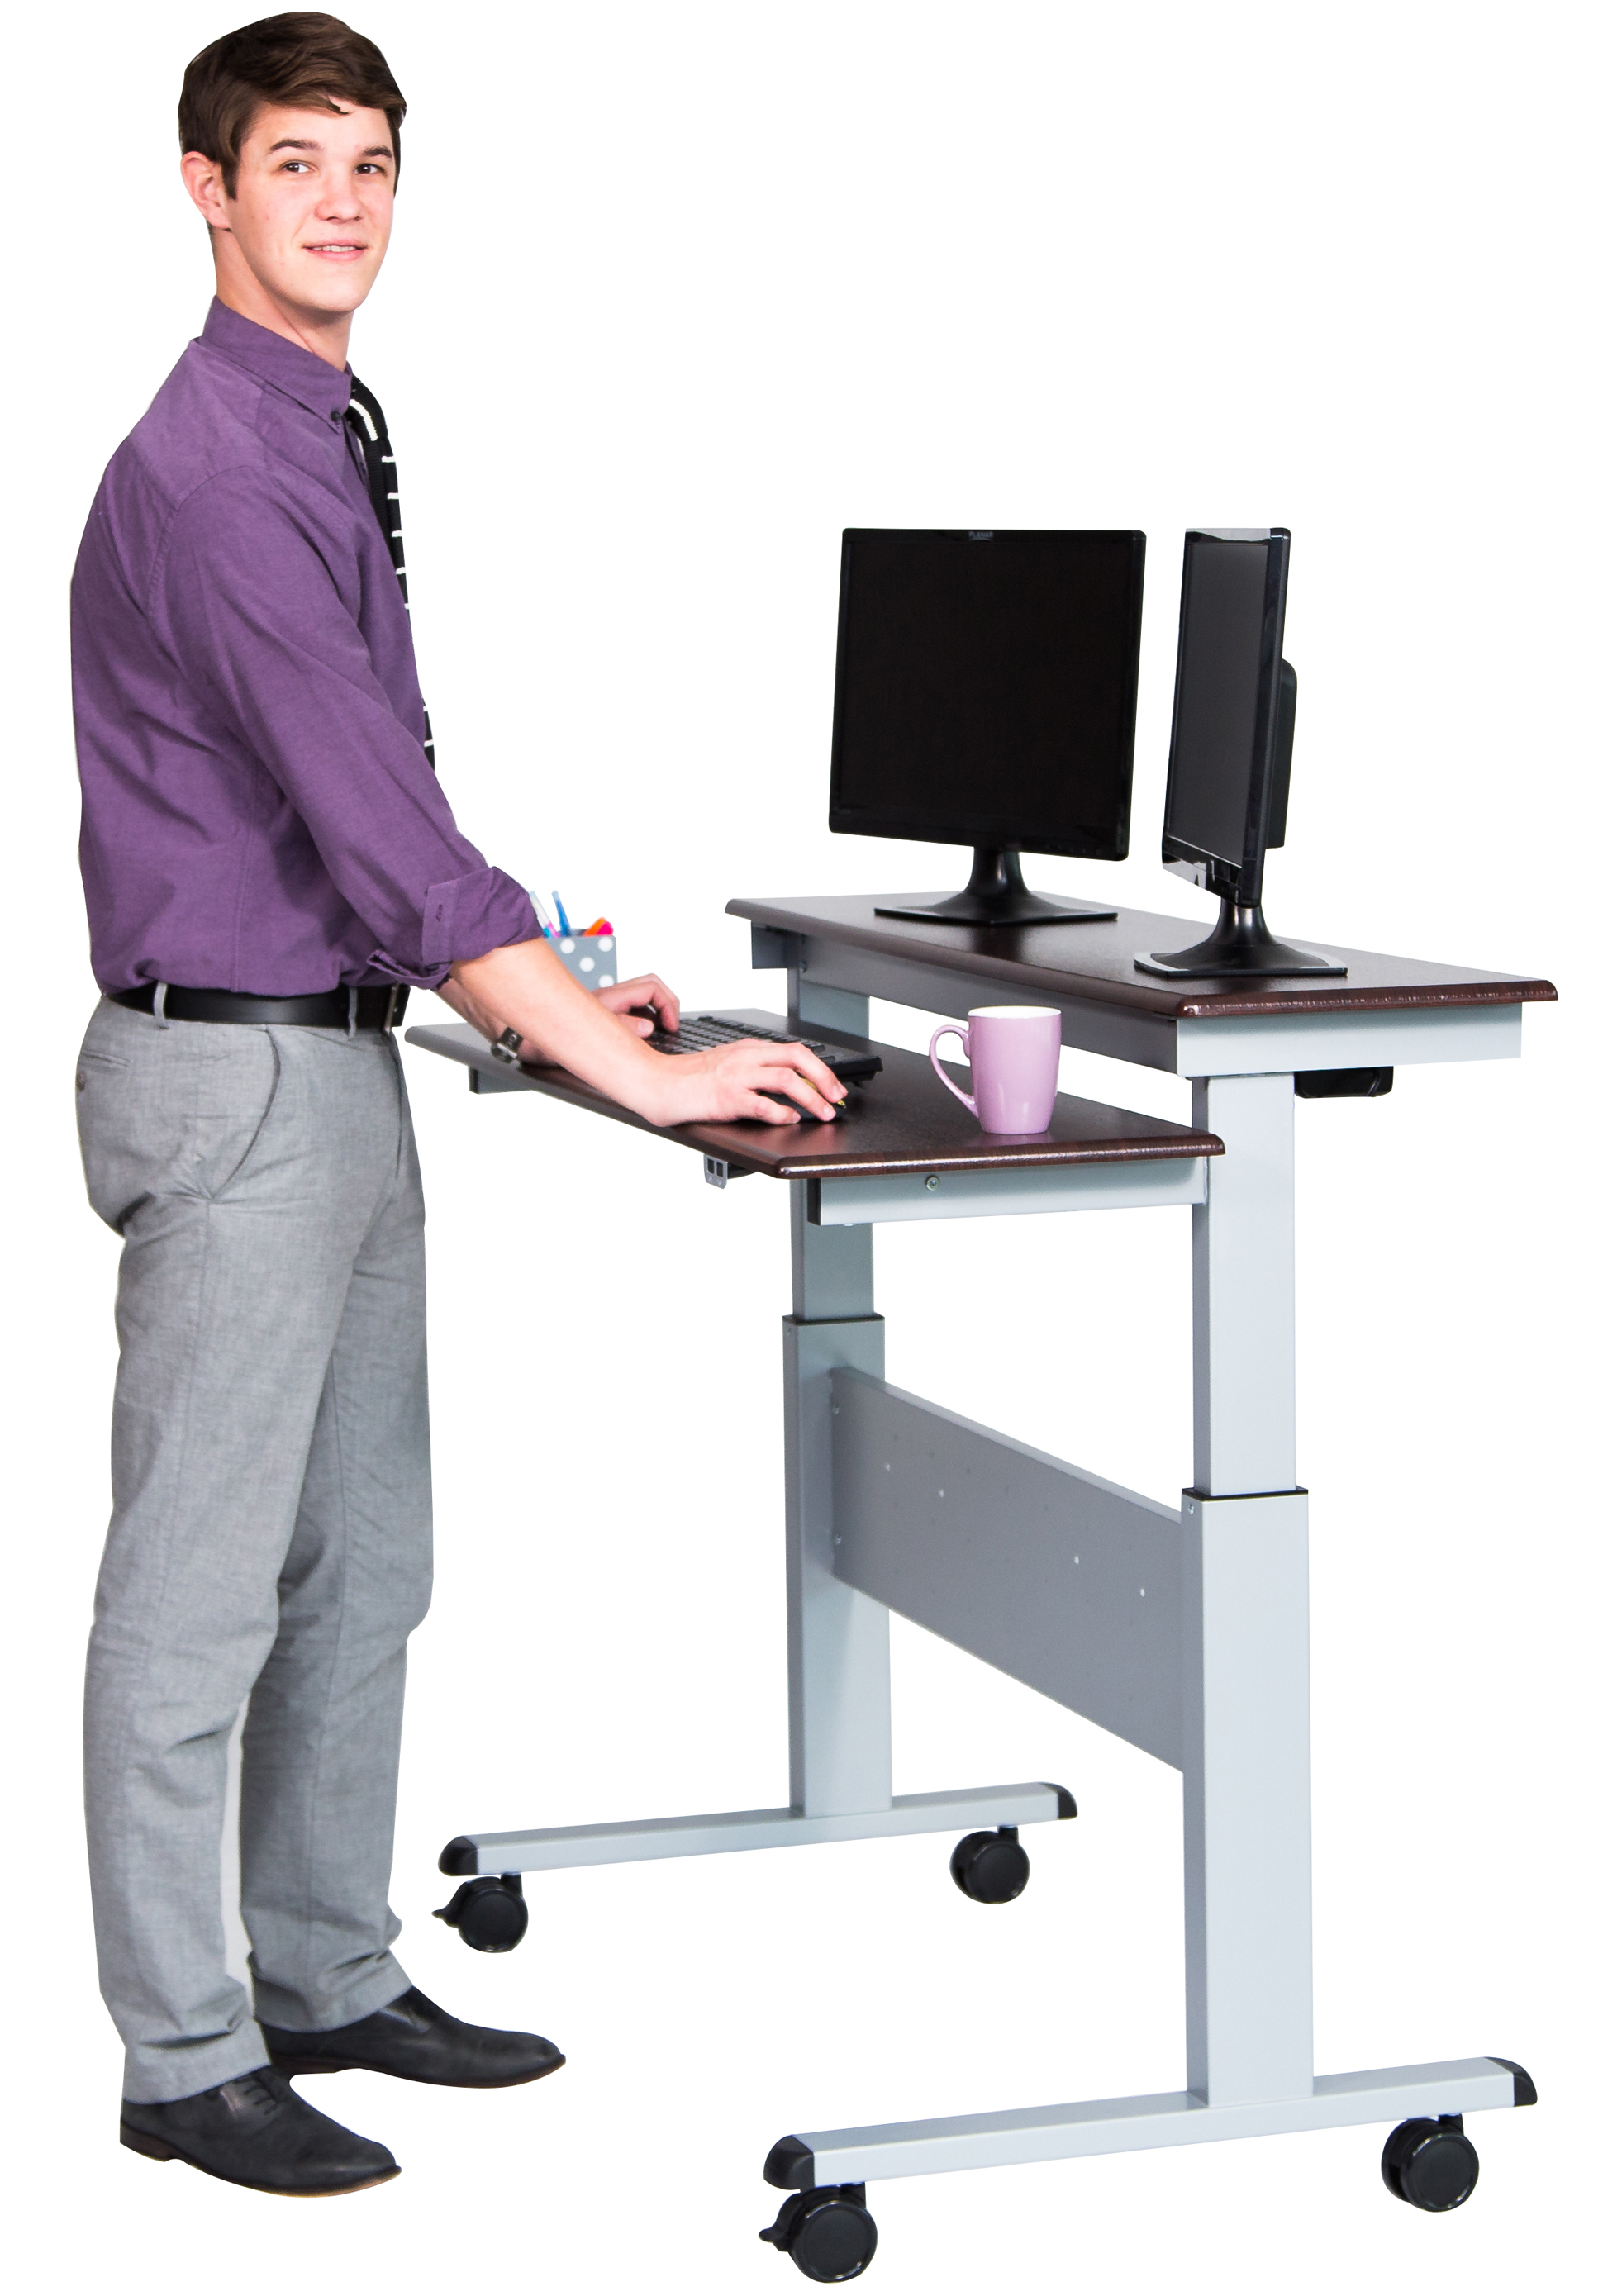 standing desk two tier electric stand up desk 48 inch | stand up desk store KBXLZKG